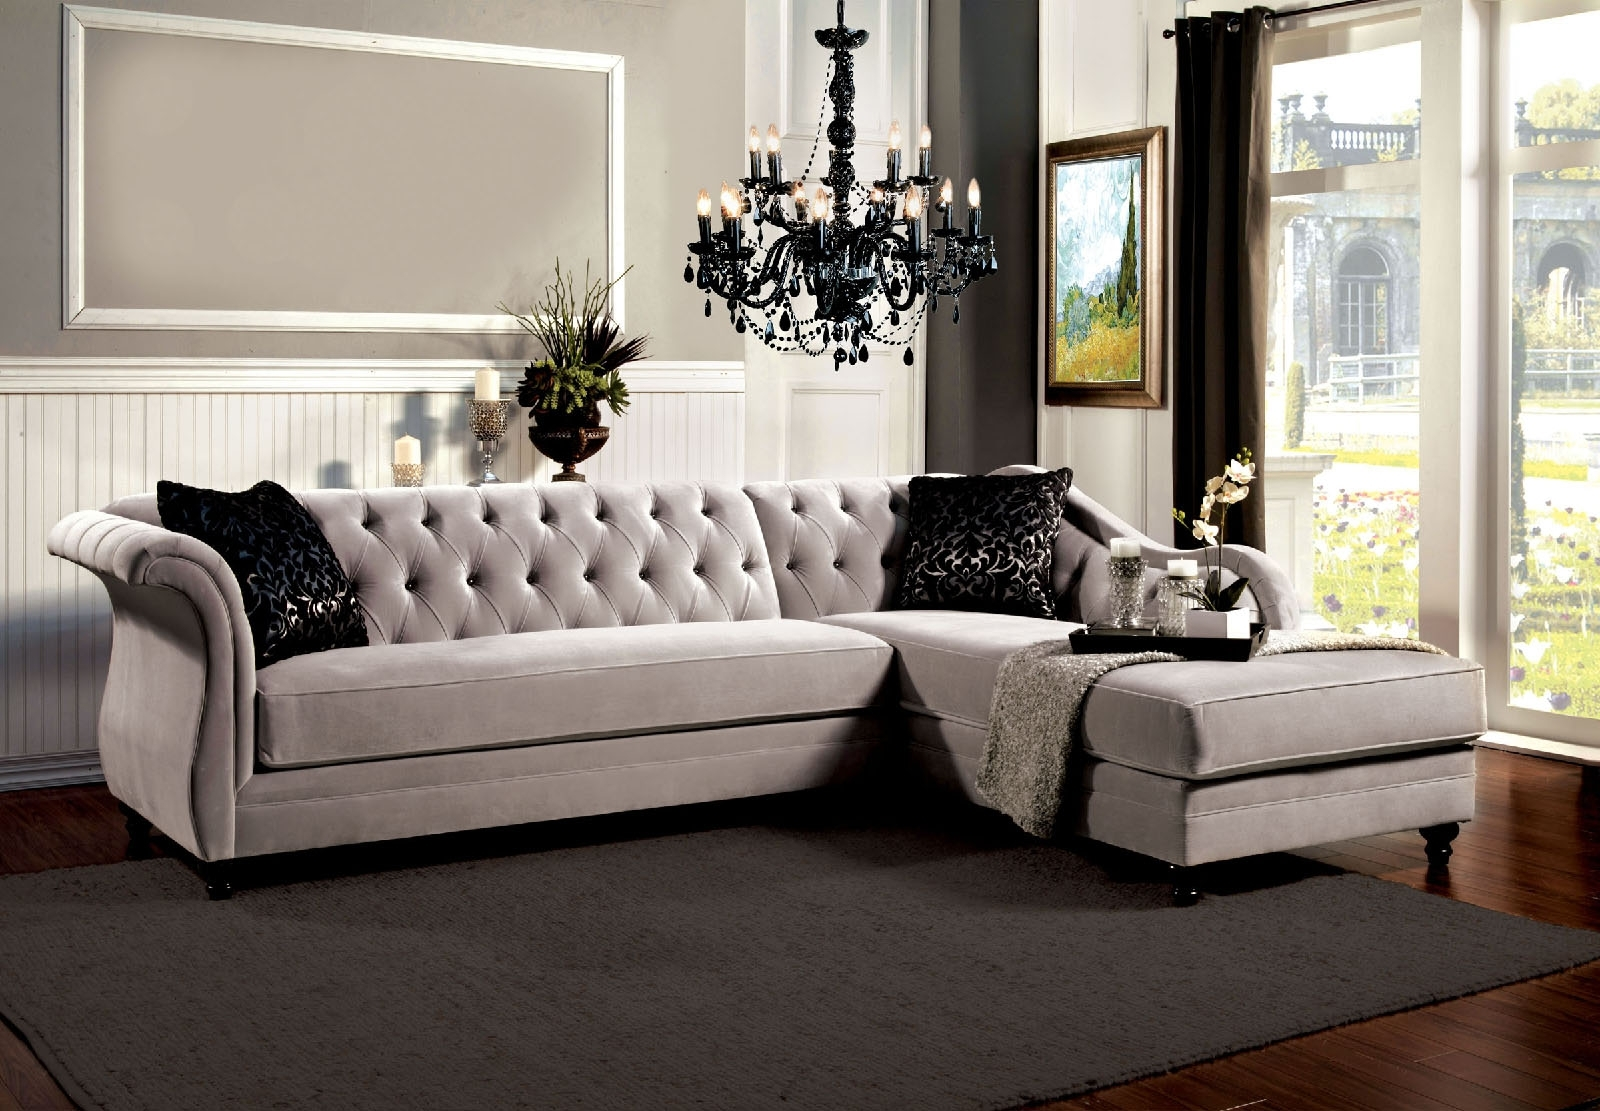 Grey Vintage Tufted Sectional Sofa pertaining to Tufted Sectional Sofas (Image 4 of 10)